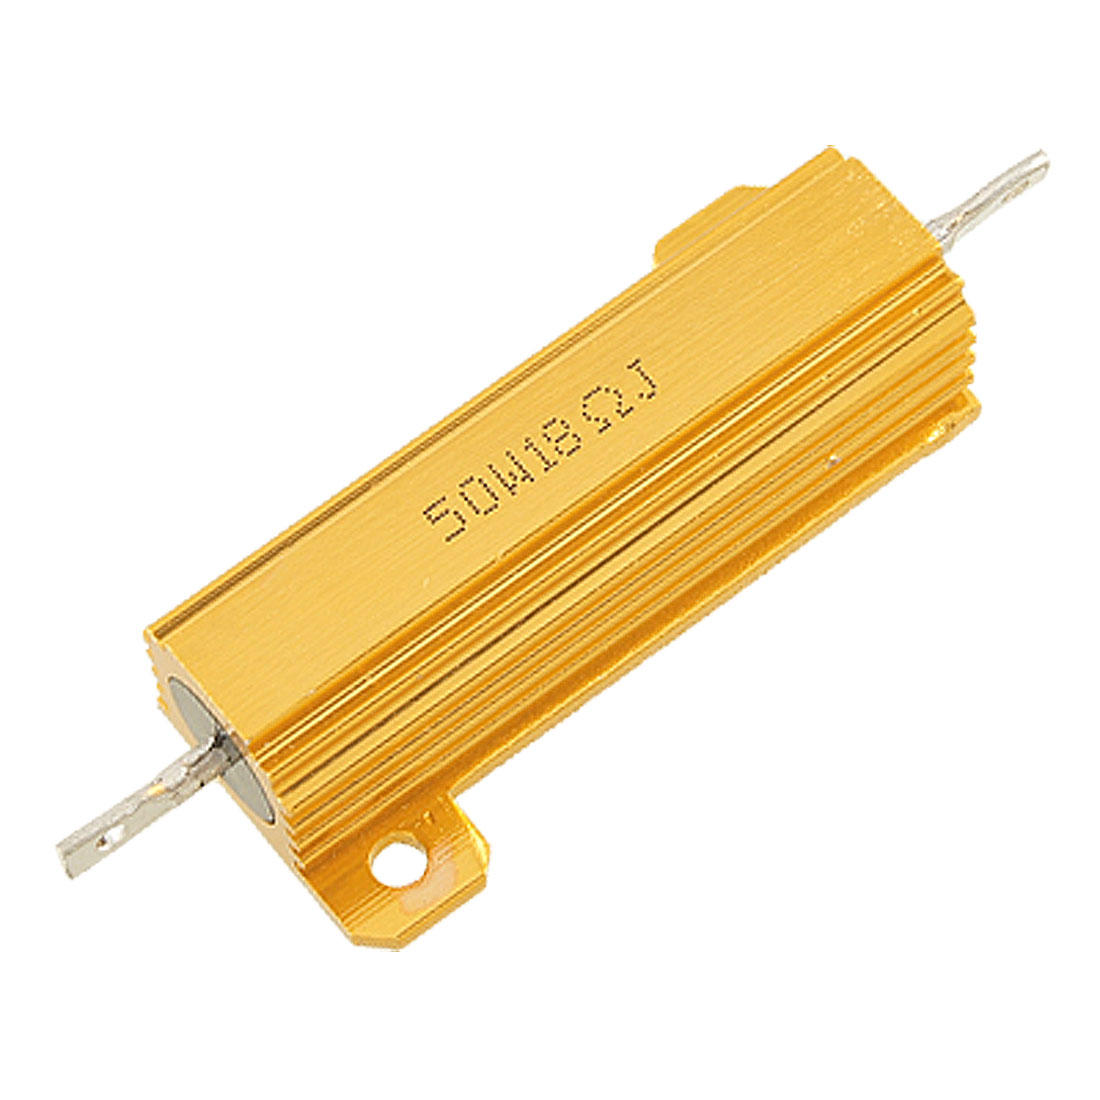 18 Ohm 5% 50W Watt Aluminum Shell Case Wirewound Power Resistor Gold Tone